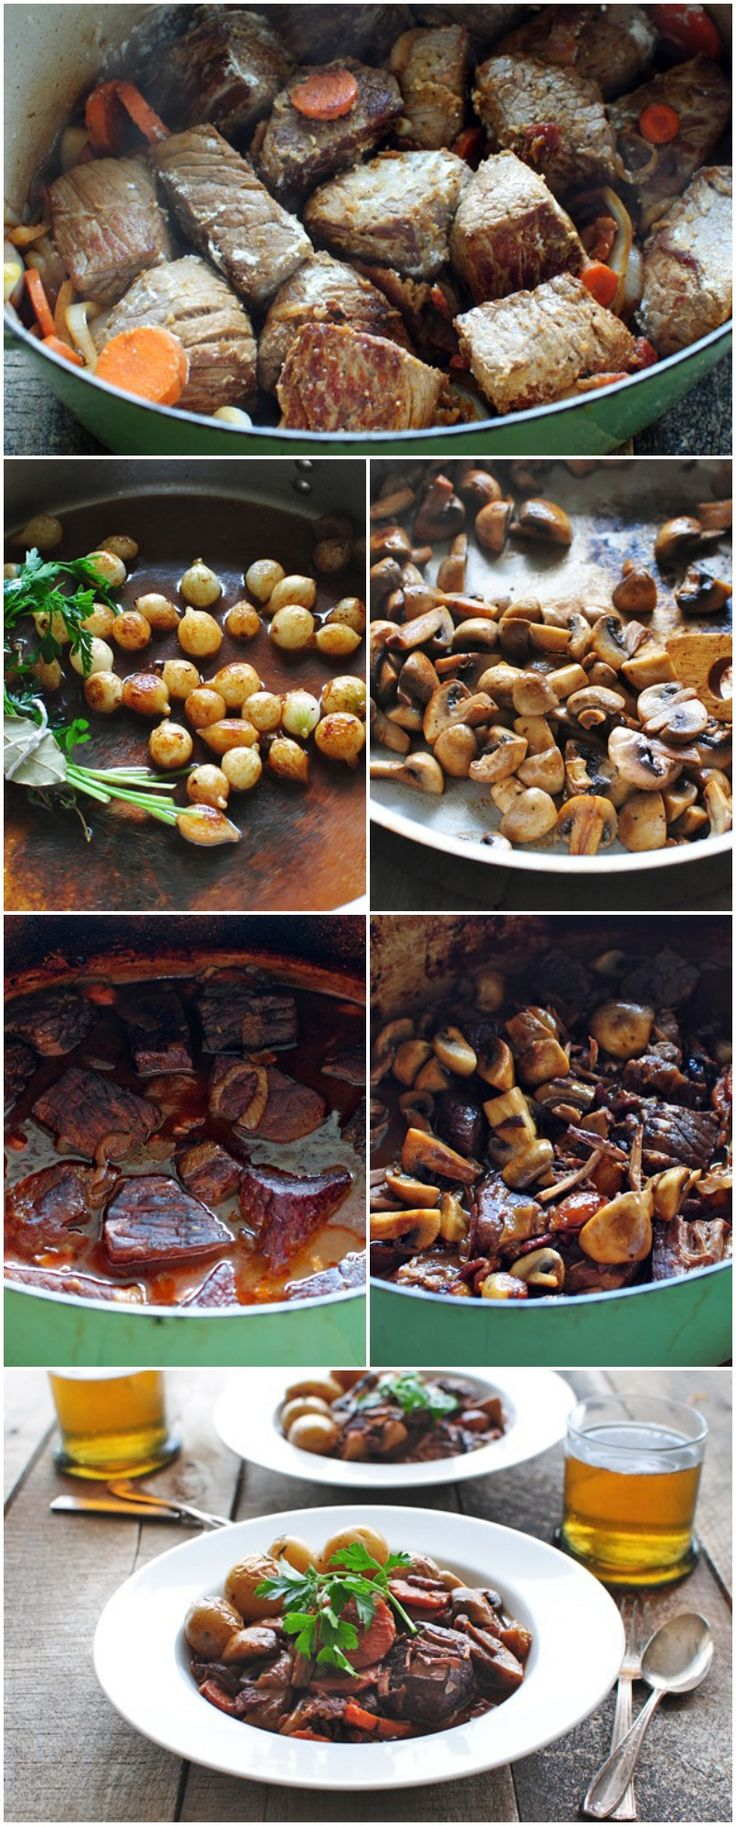 HOW TO: Make Julia Child's Beef Bourguignon - one of my favorite recipes!  I need to make this soon.